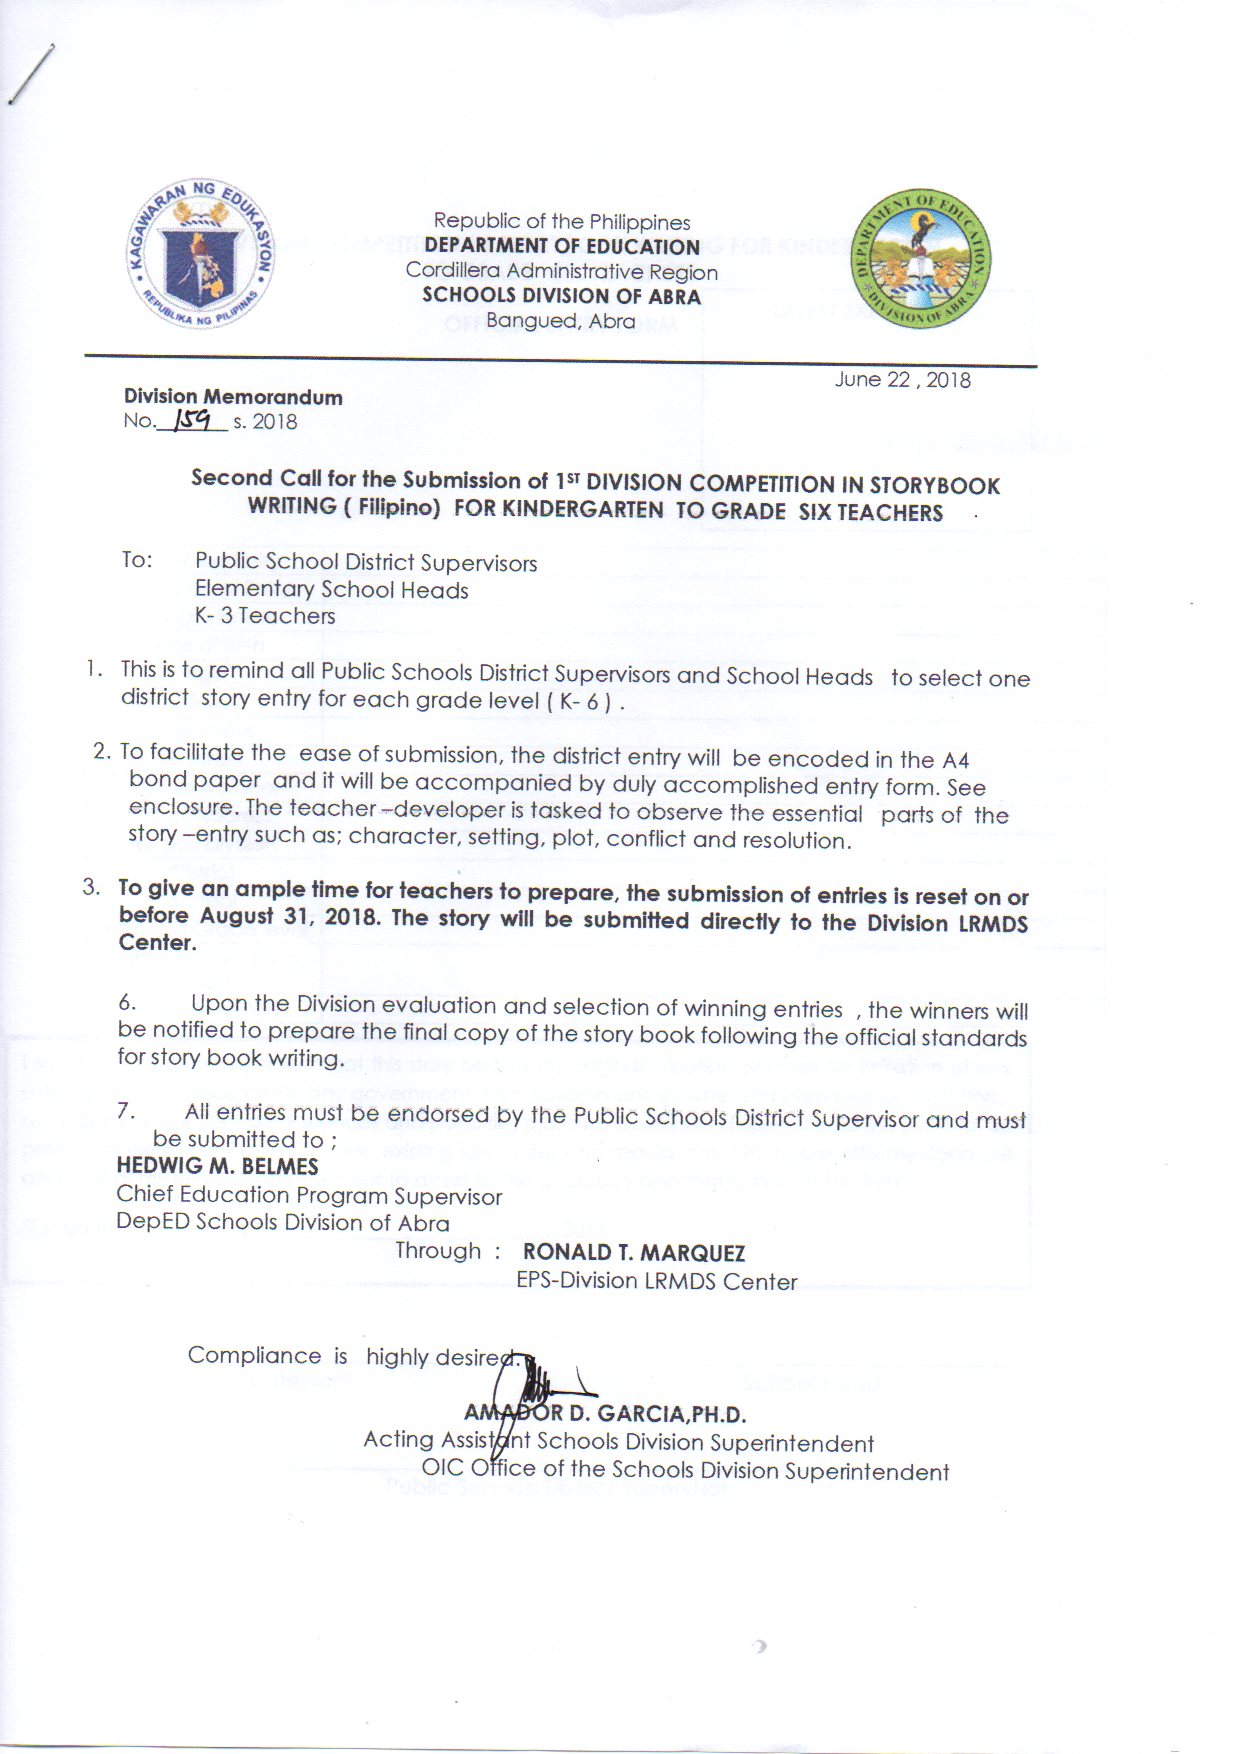 DepEd Division Memo Archives - Page 7 of 25 - Welcome to the